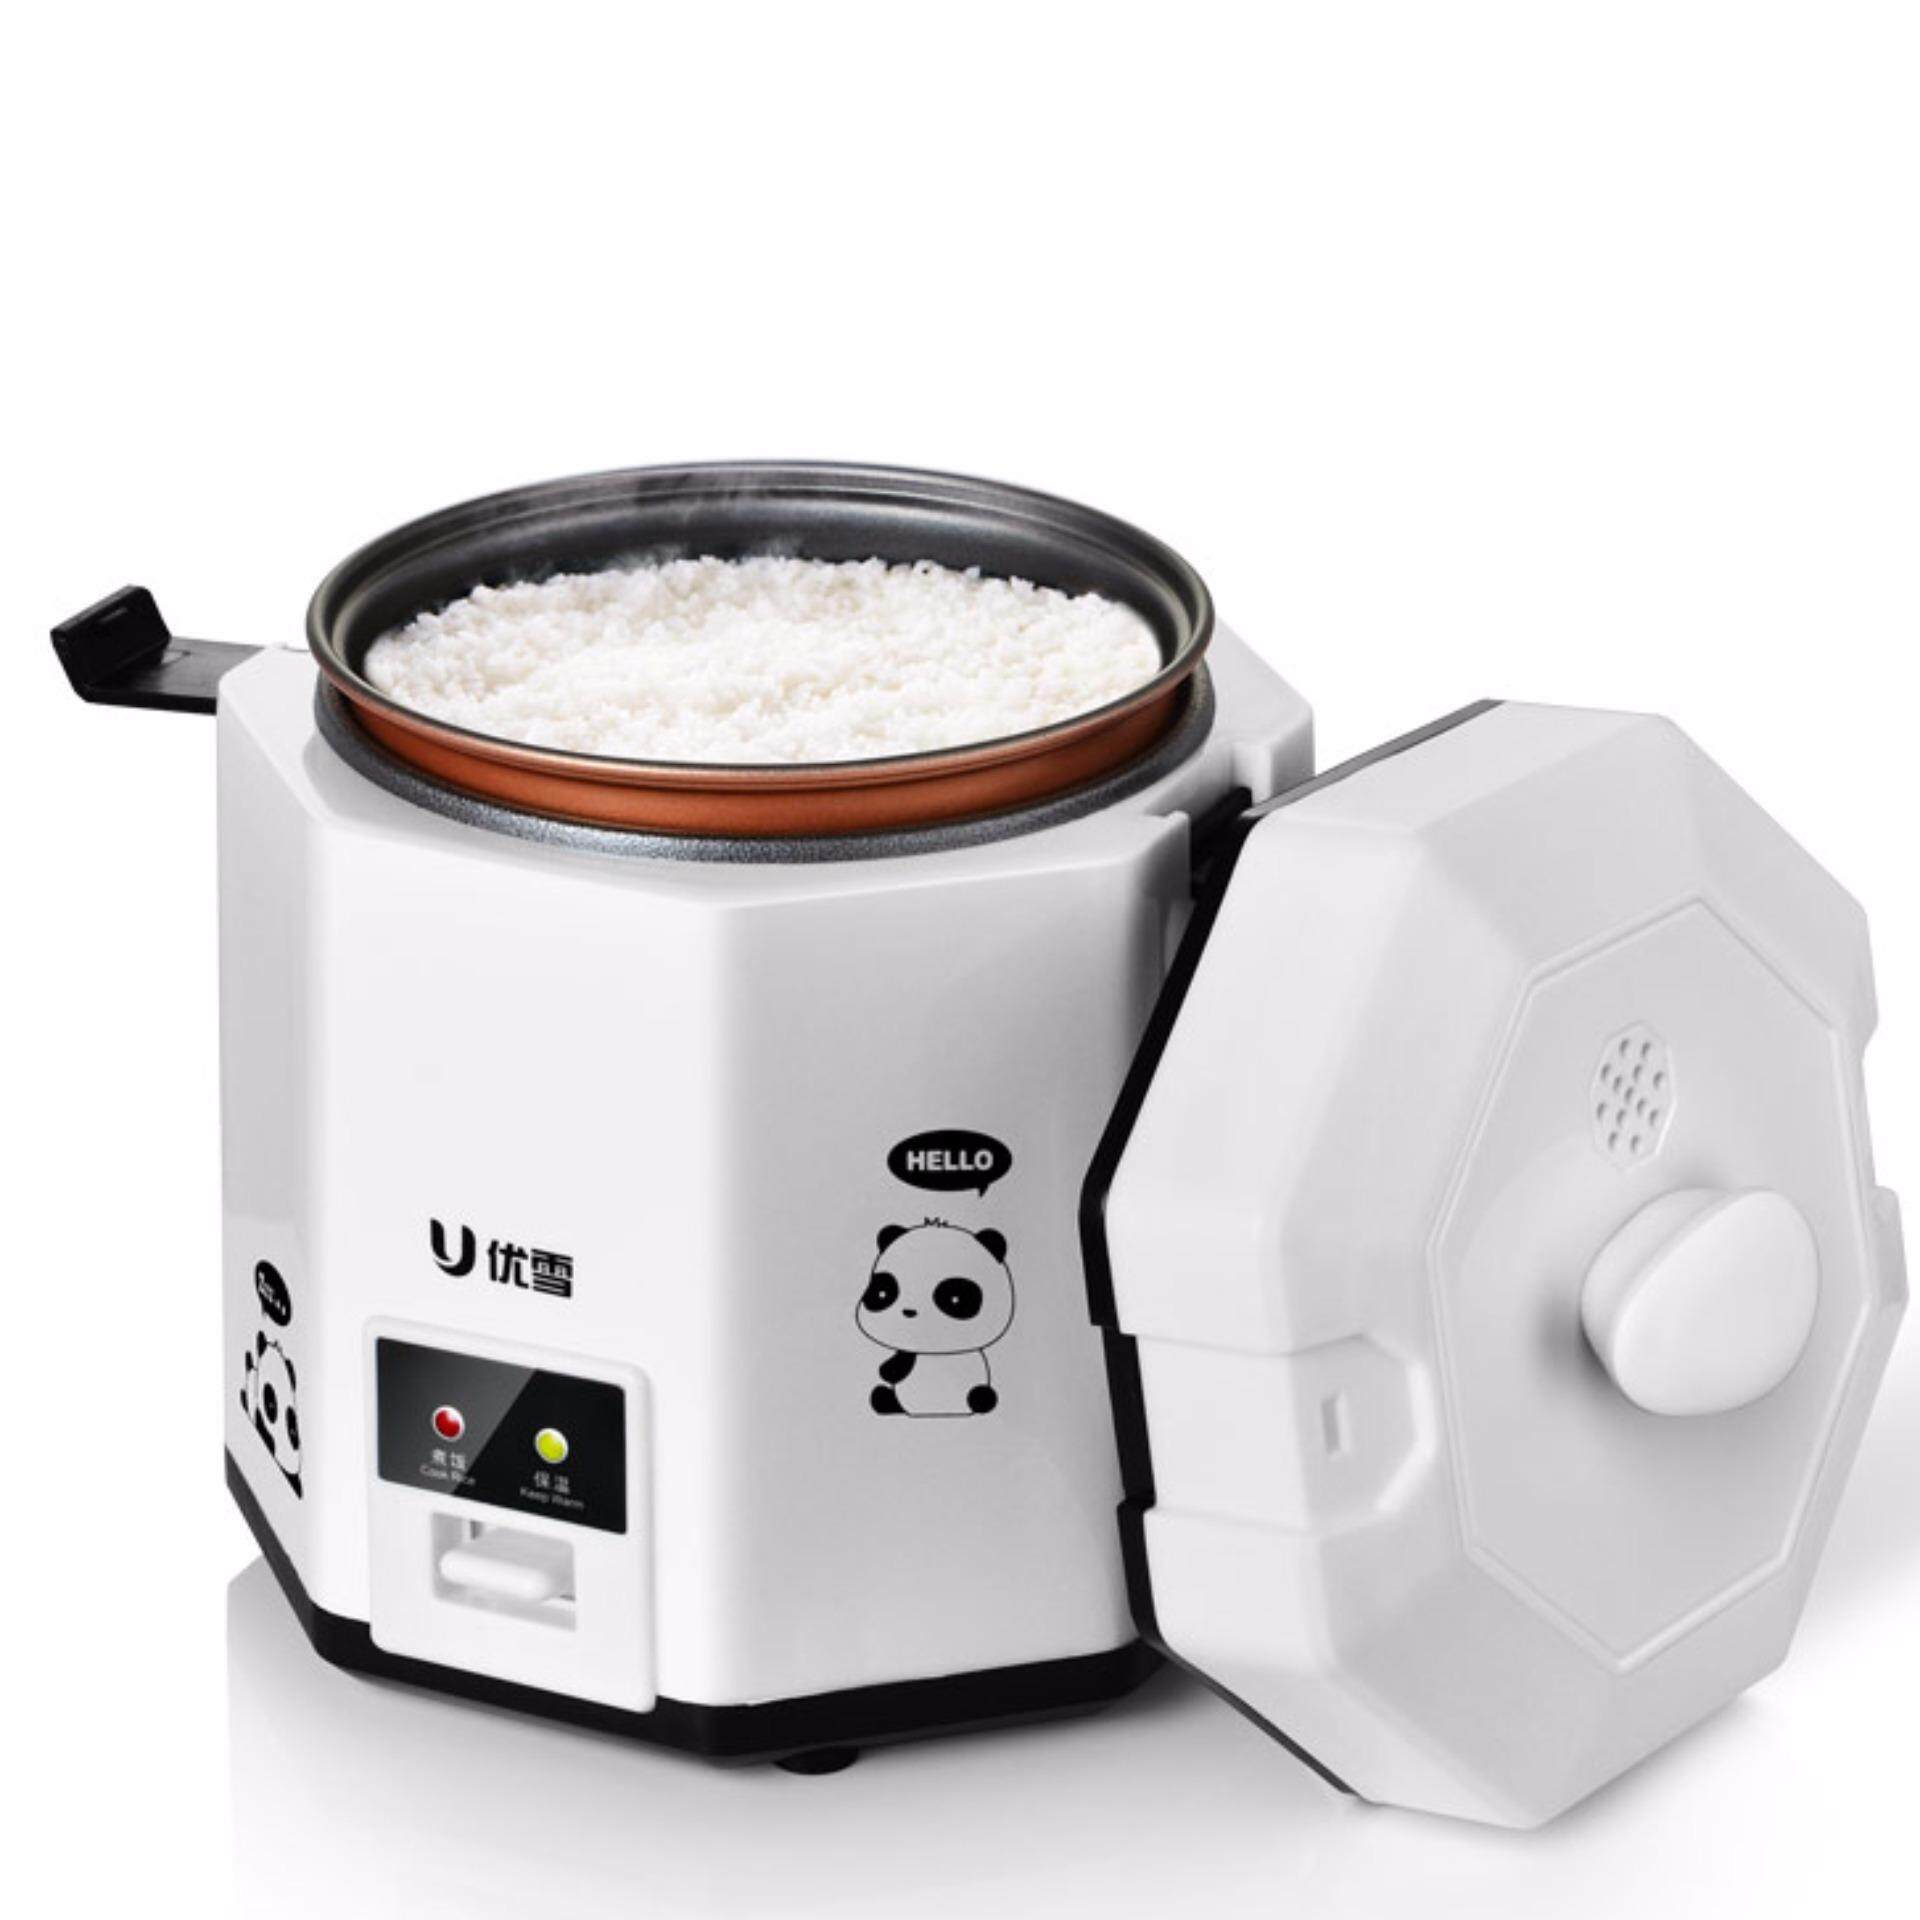 Mini Rice Cooker, Food Steamer, Making Rice, 2-Cup(cooked), 4-Bowls (cooked), Designed For Students Or Single, Simply Small Kitchen Appliances By 555 Girl.